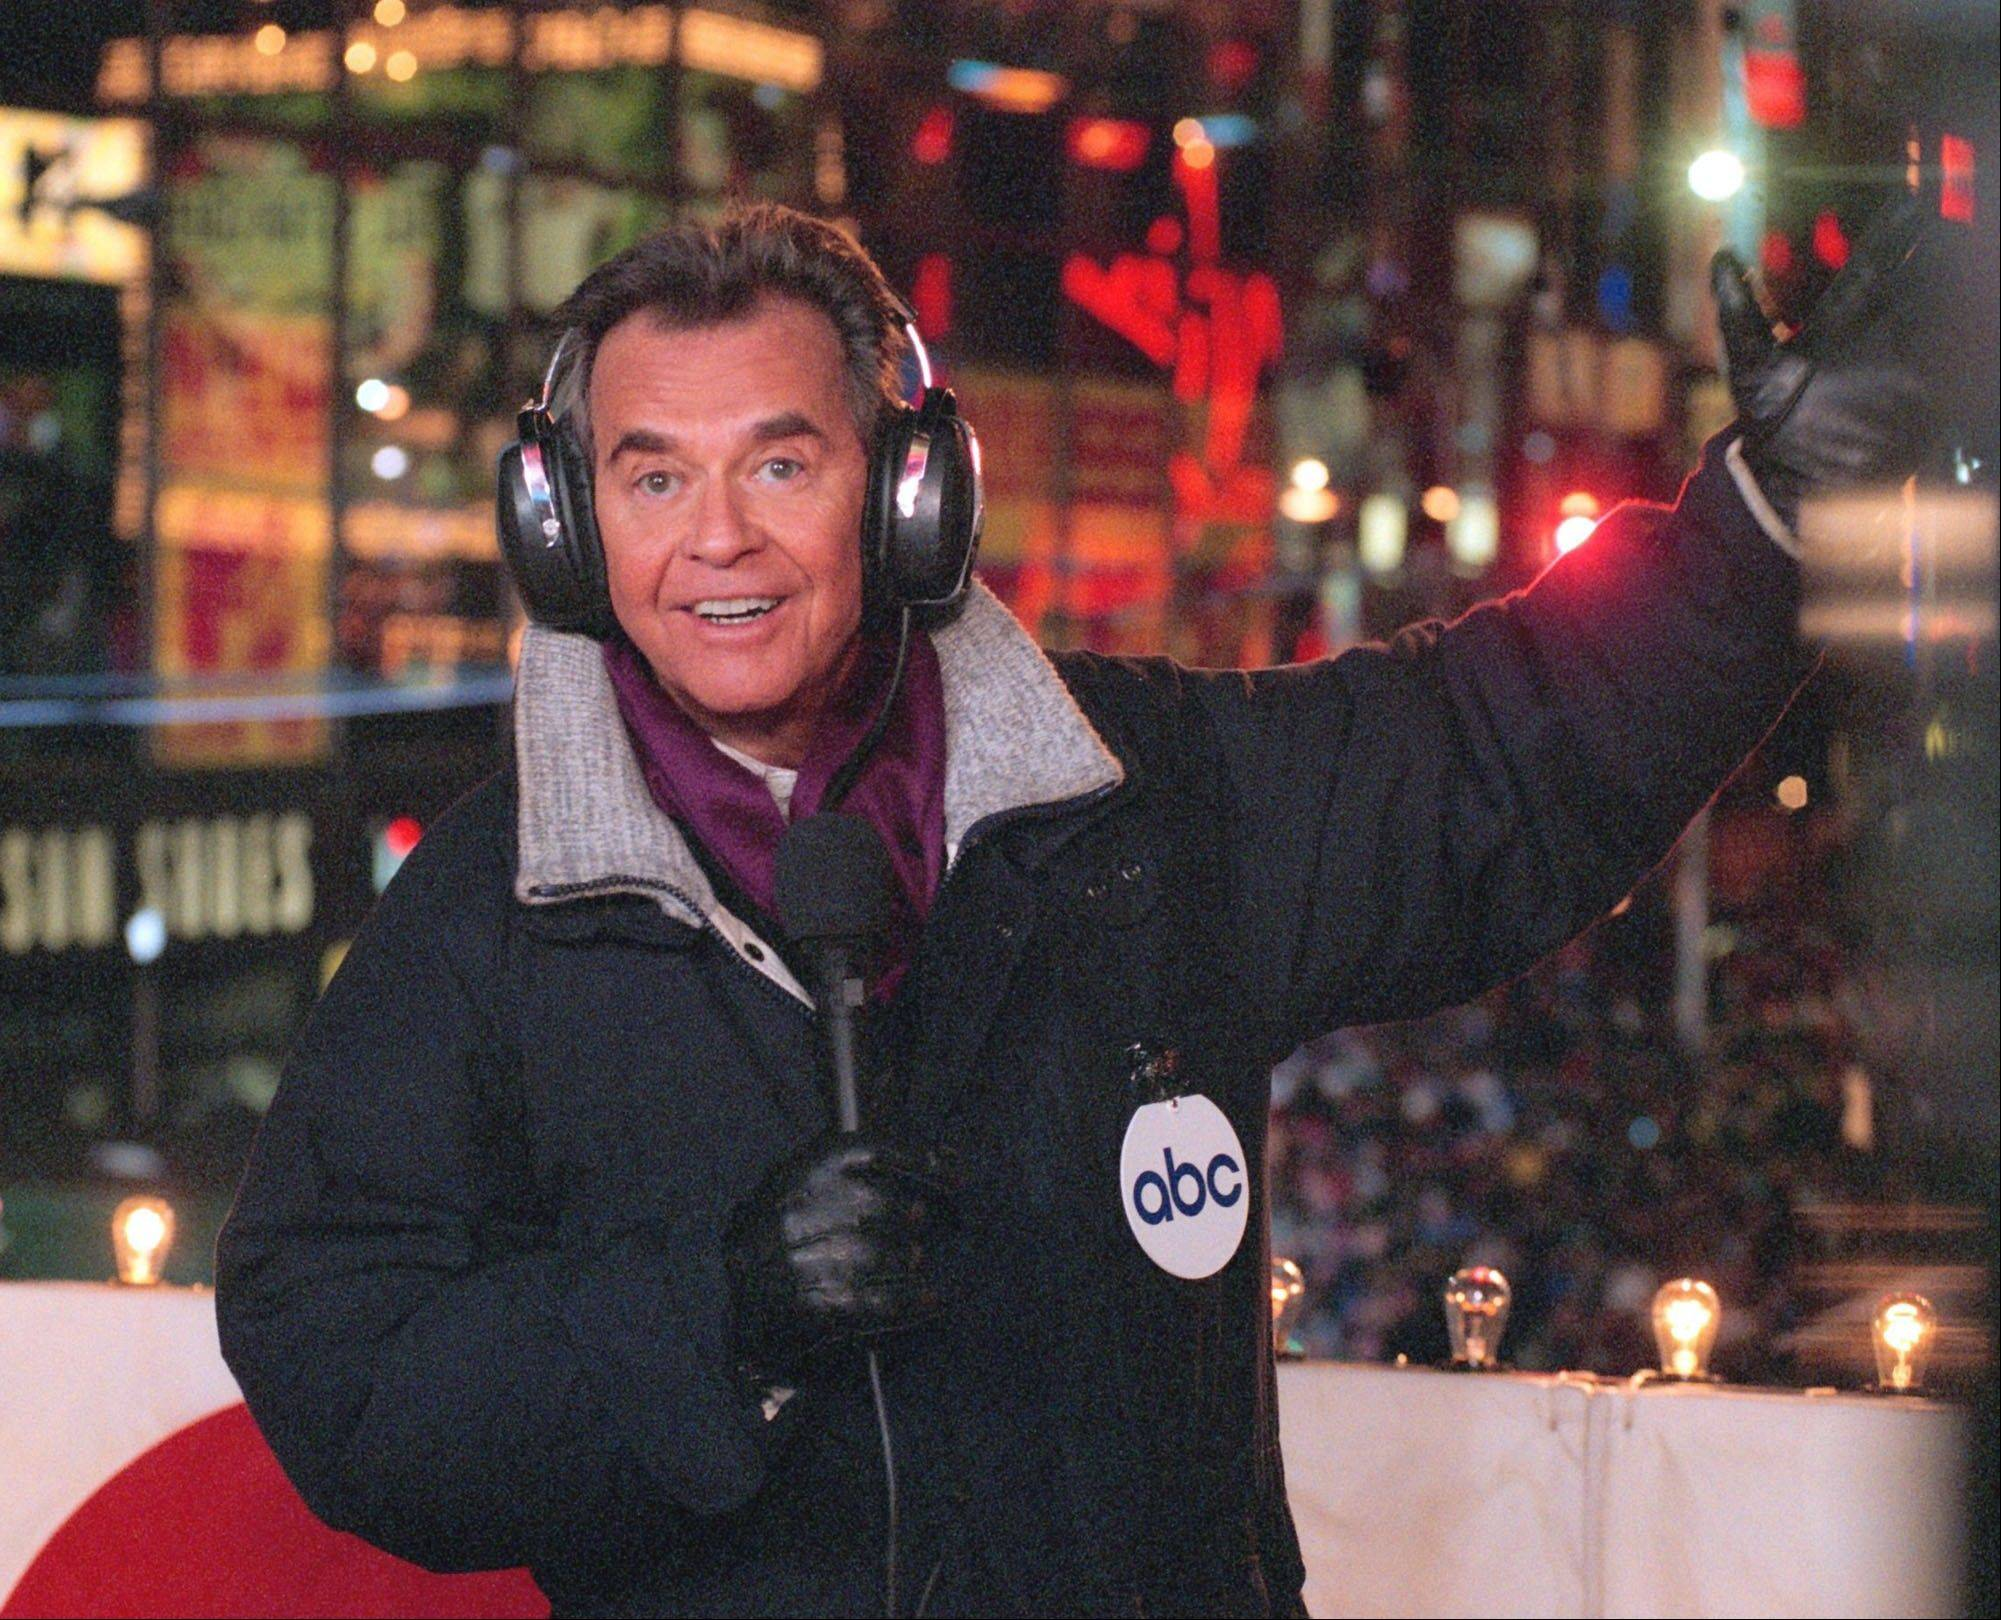 Dick Clark hosts the New Year's eve special from New York's Times Square.